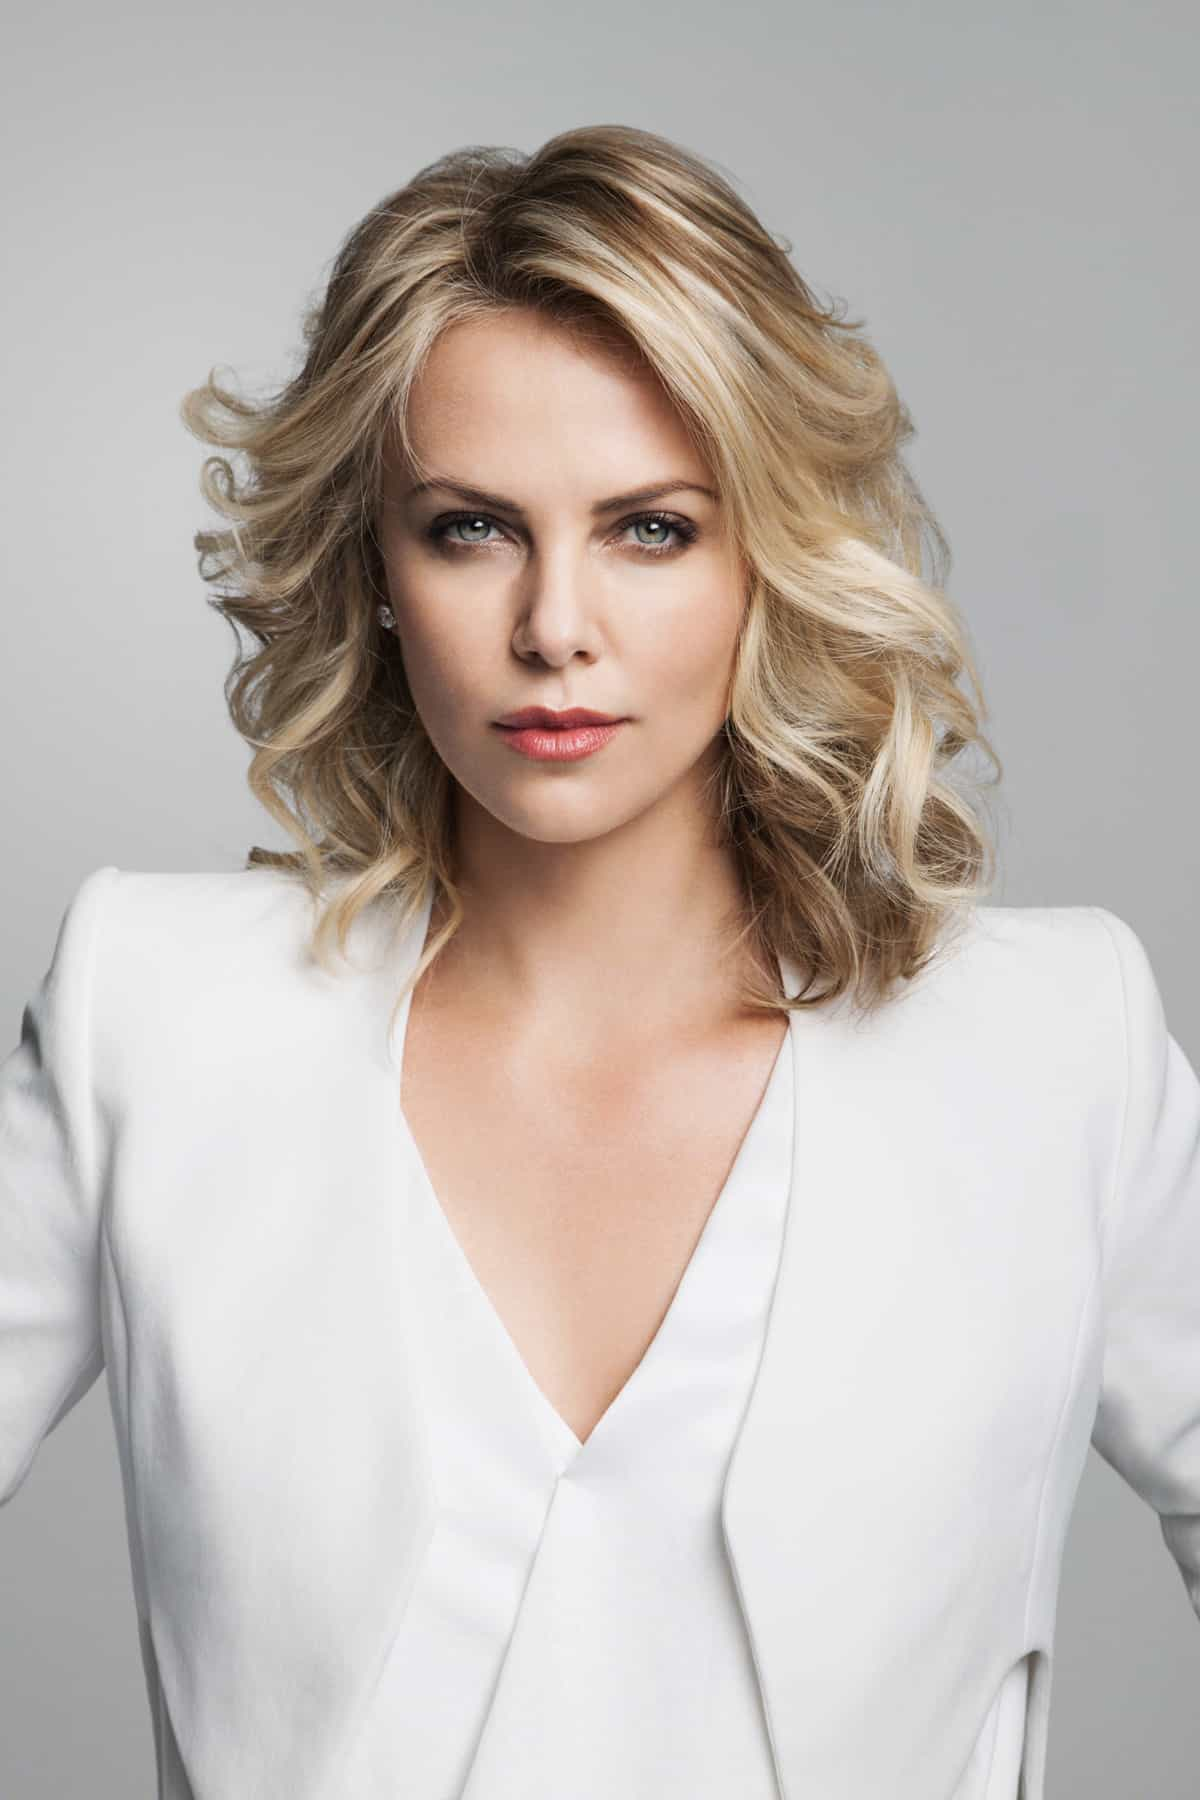 Charlize Theron Atomic Blonde Tully San Francisco Film Festival Tribute